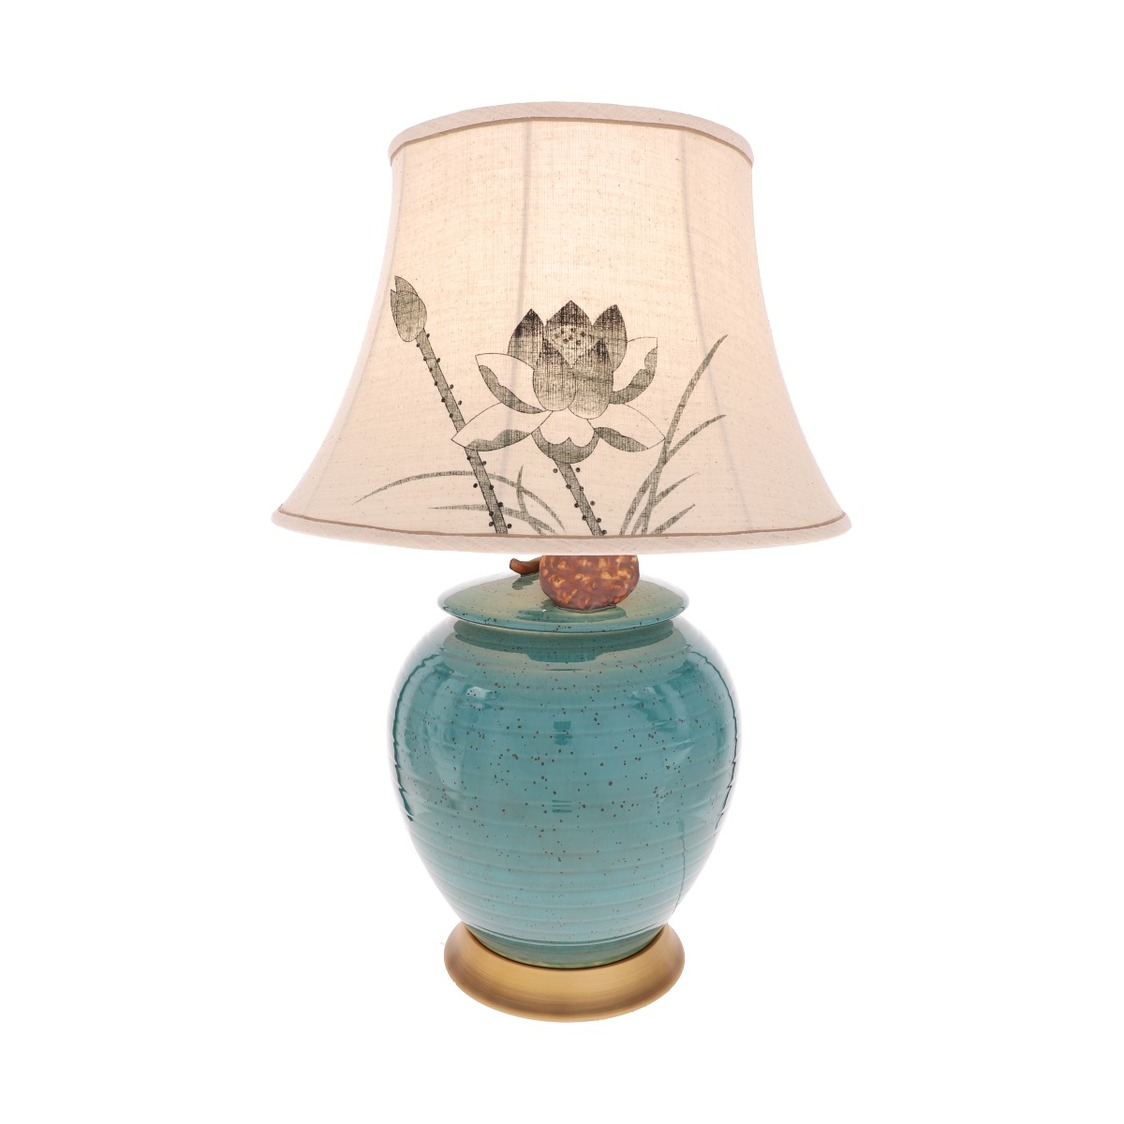 Porcelain Vase Lamp in Turquoise